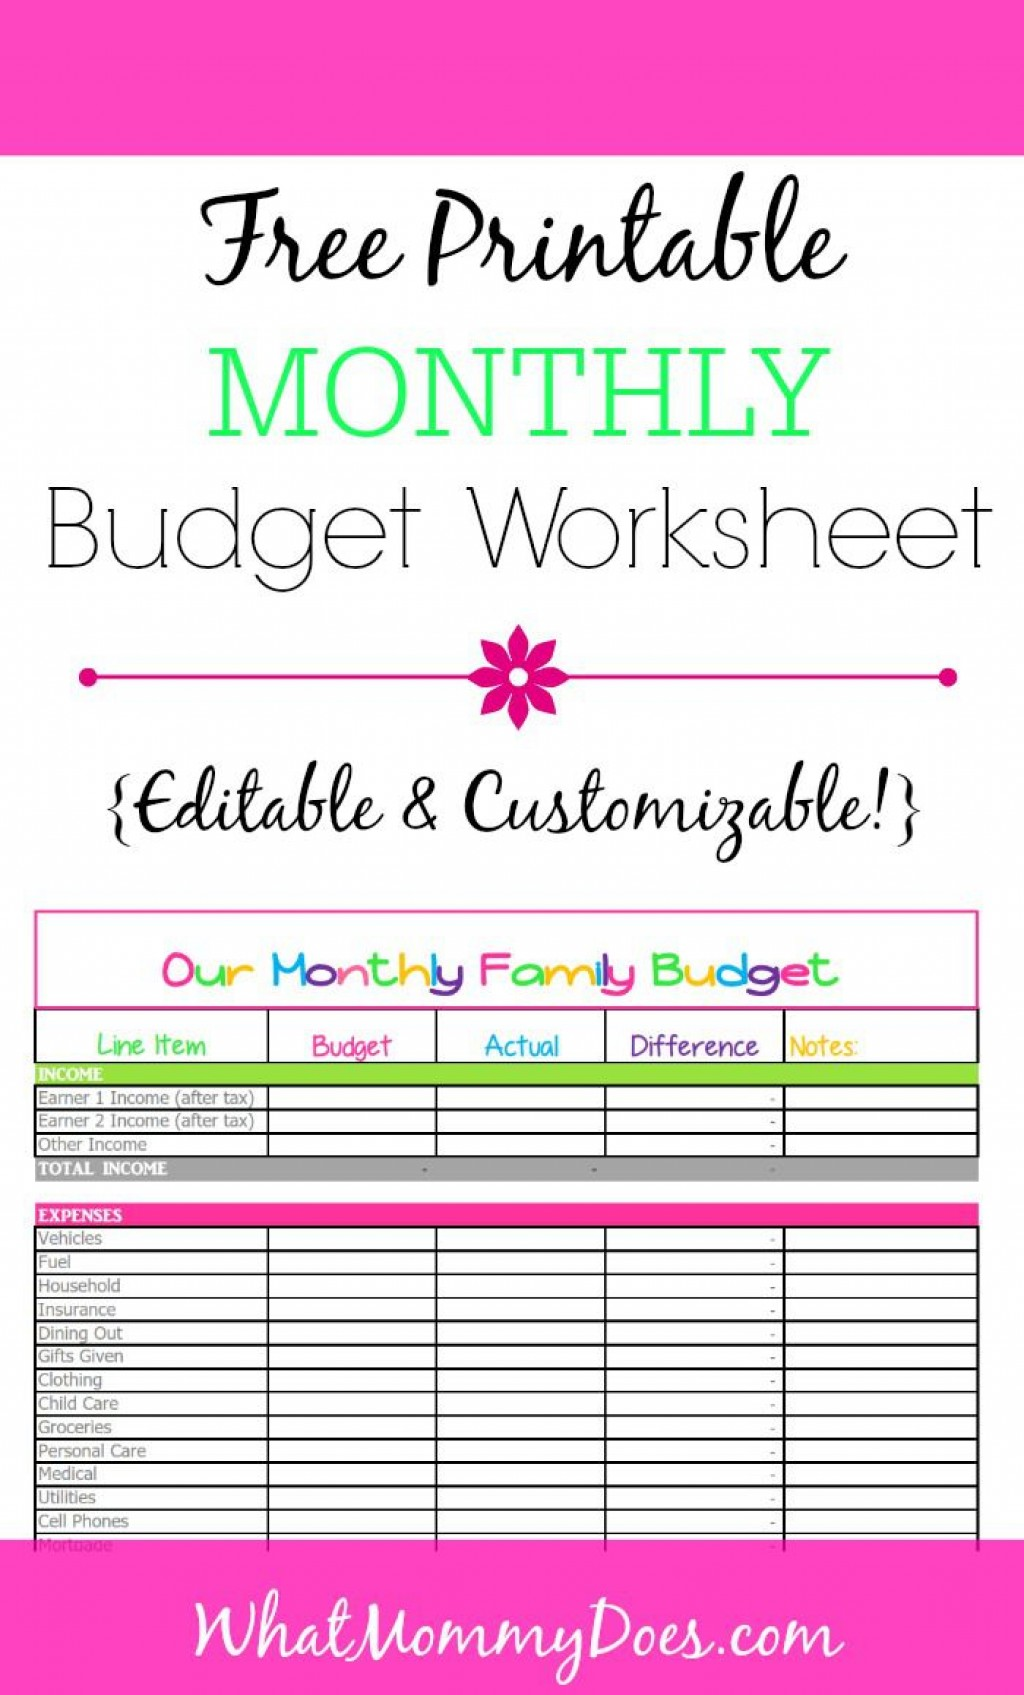 007 Fantastic Free Printable Home Budget Template Highest Clarity  Sheet FormLarge